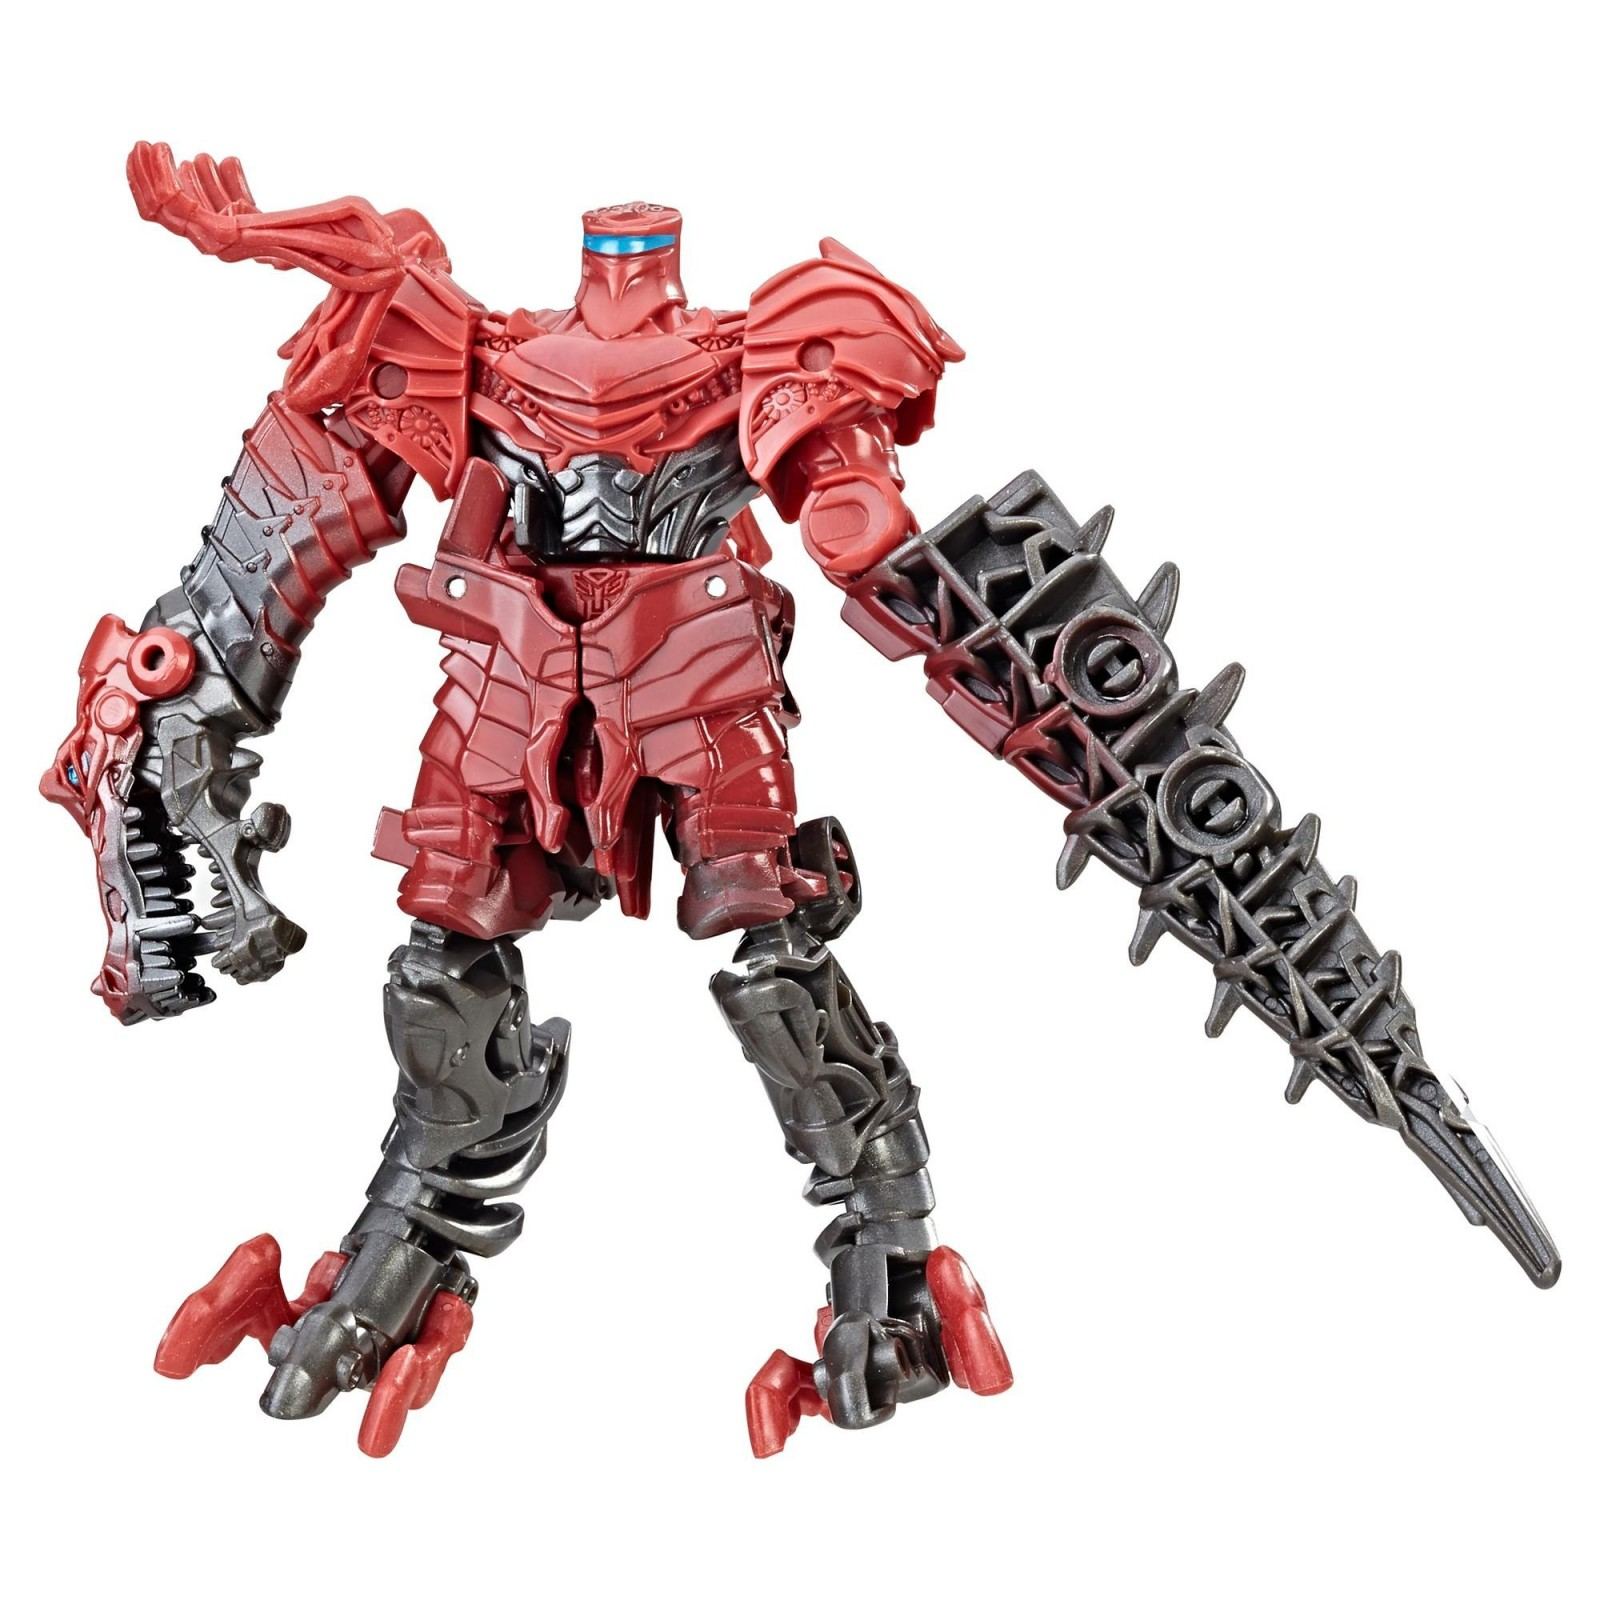 Transformers News: Wave 3 One Steps with Scorn, Cogman and Drift from Transformers: The Last Knight found in Canada